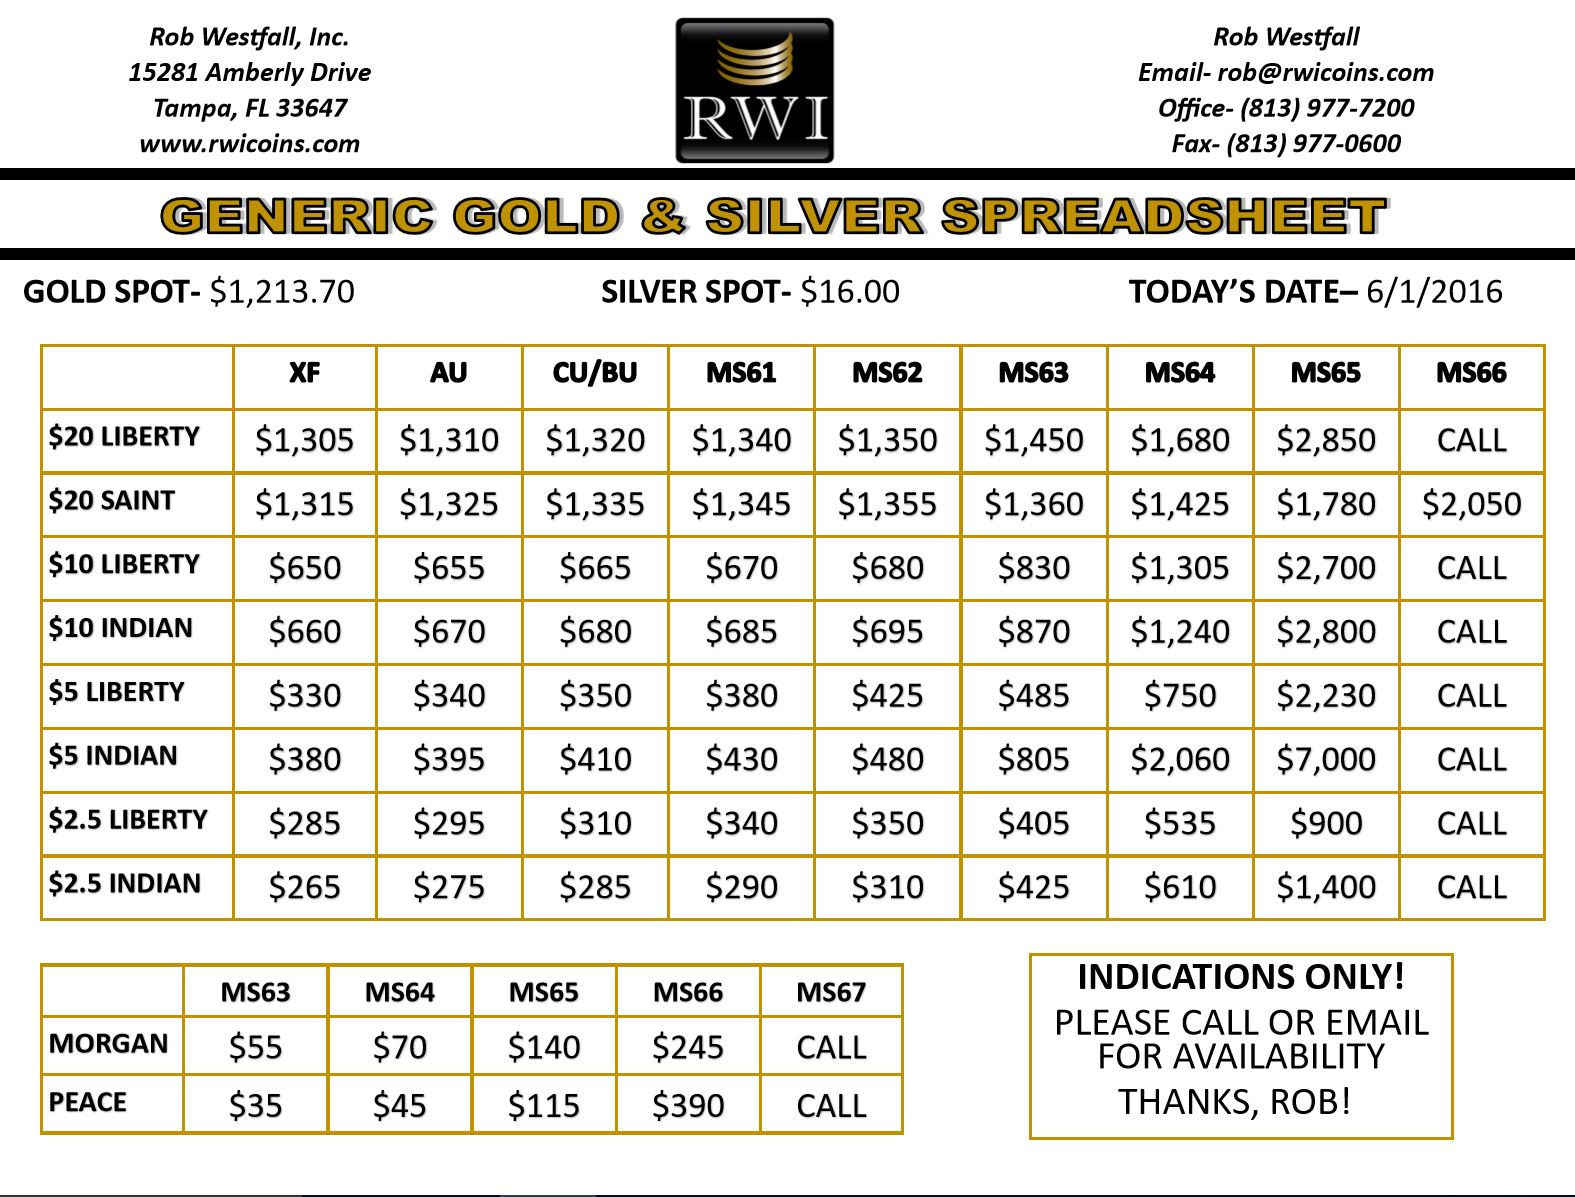 Generic Spreadsheet Within Rwi U.s Gold  Silver